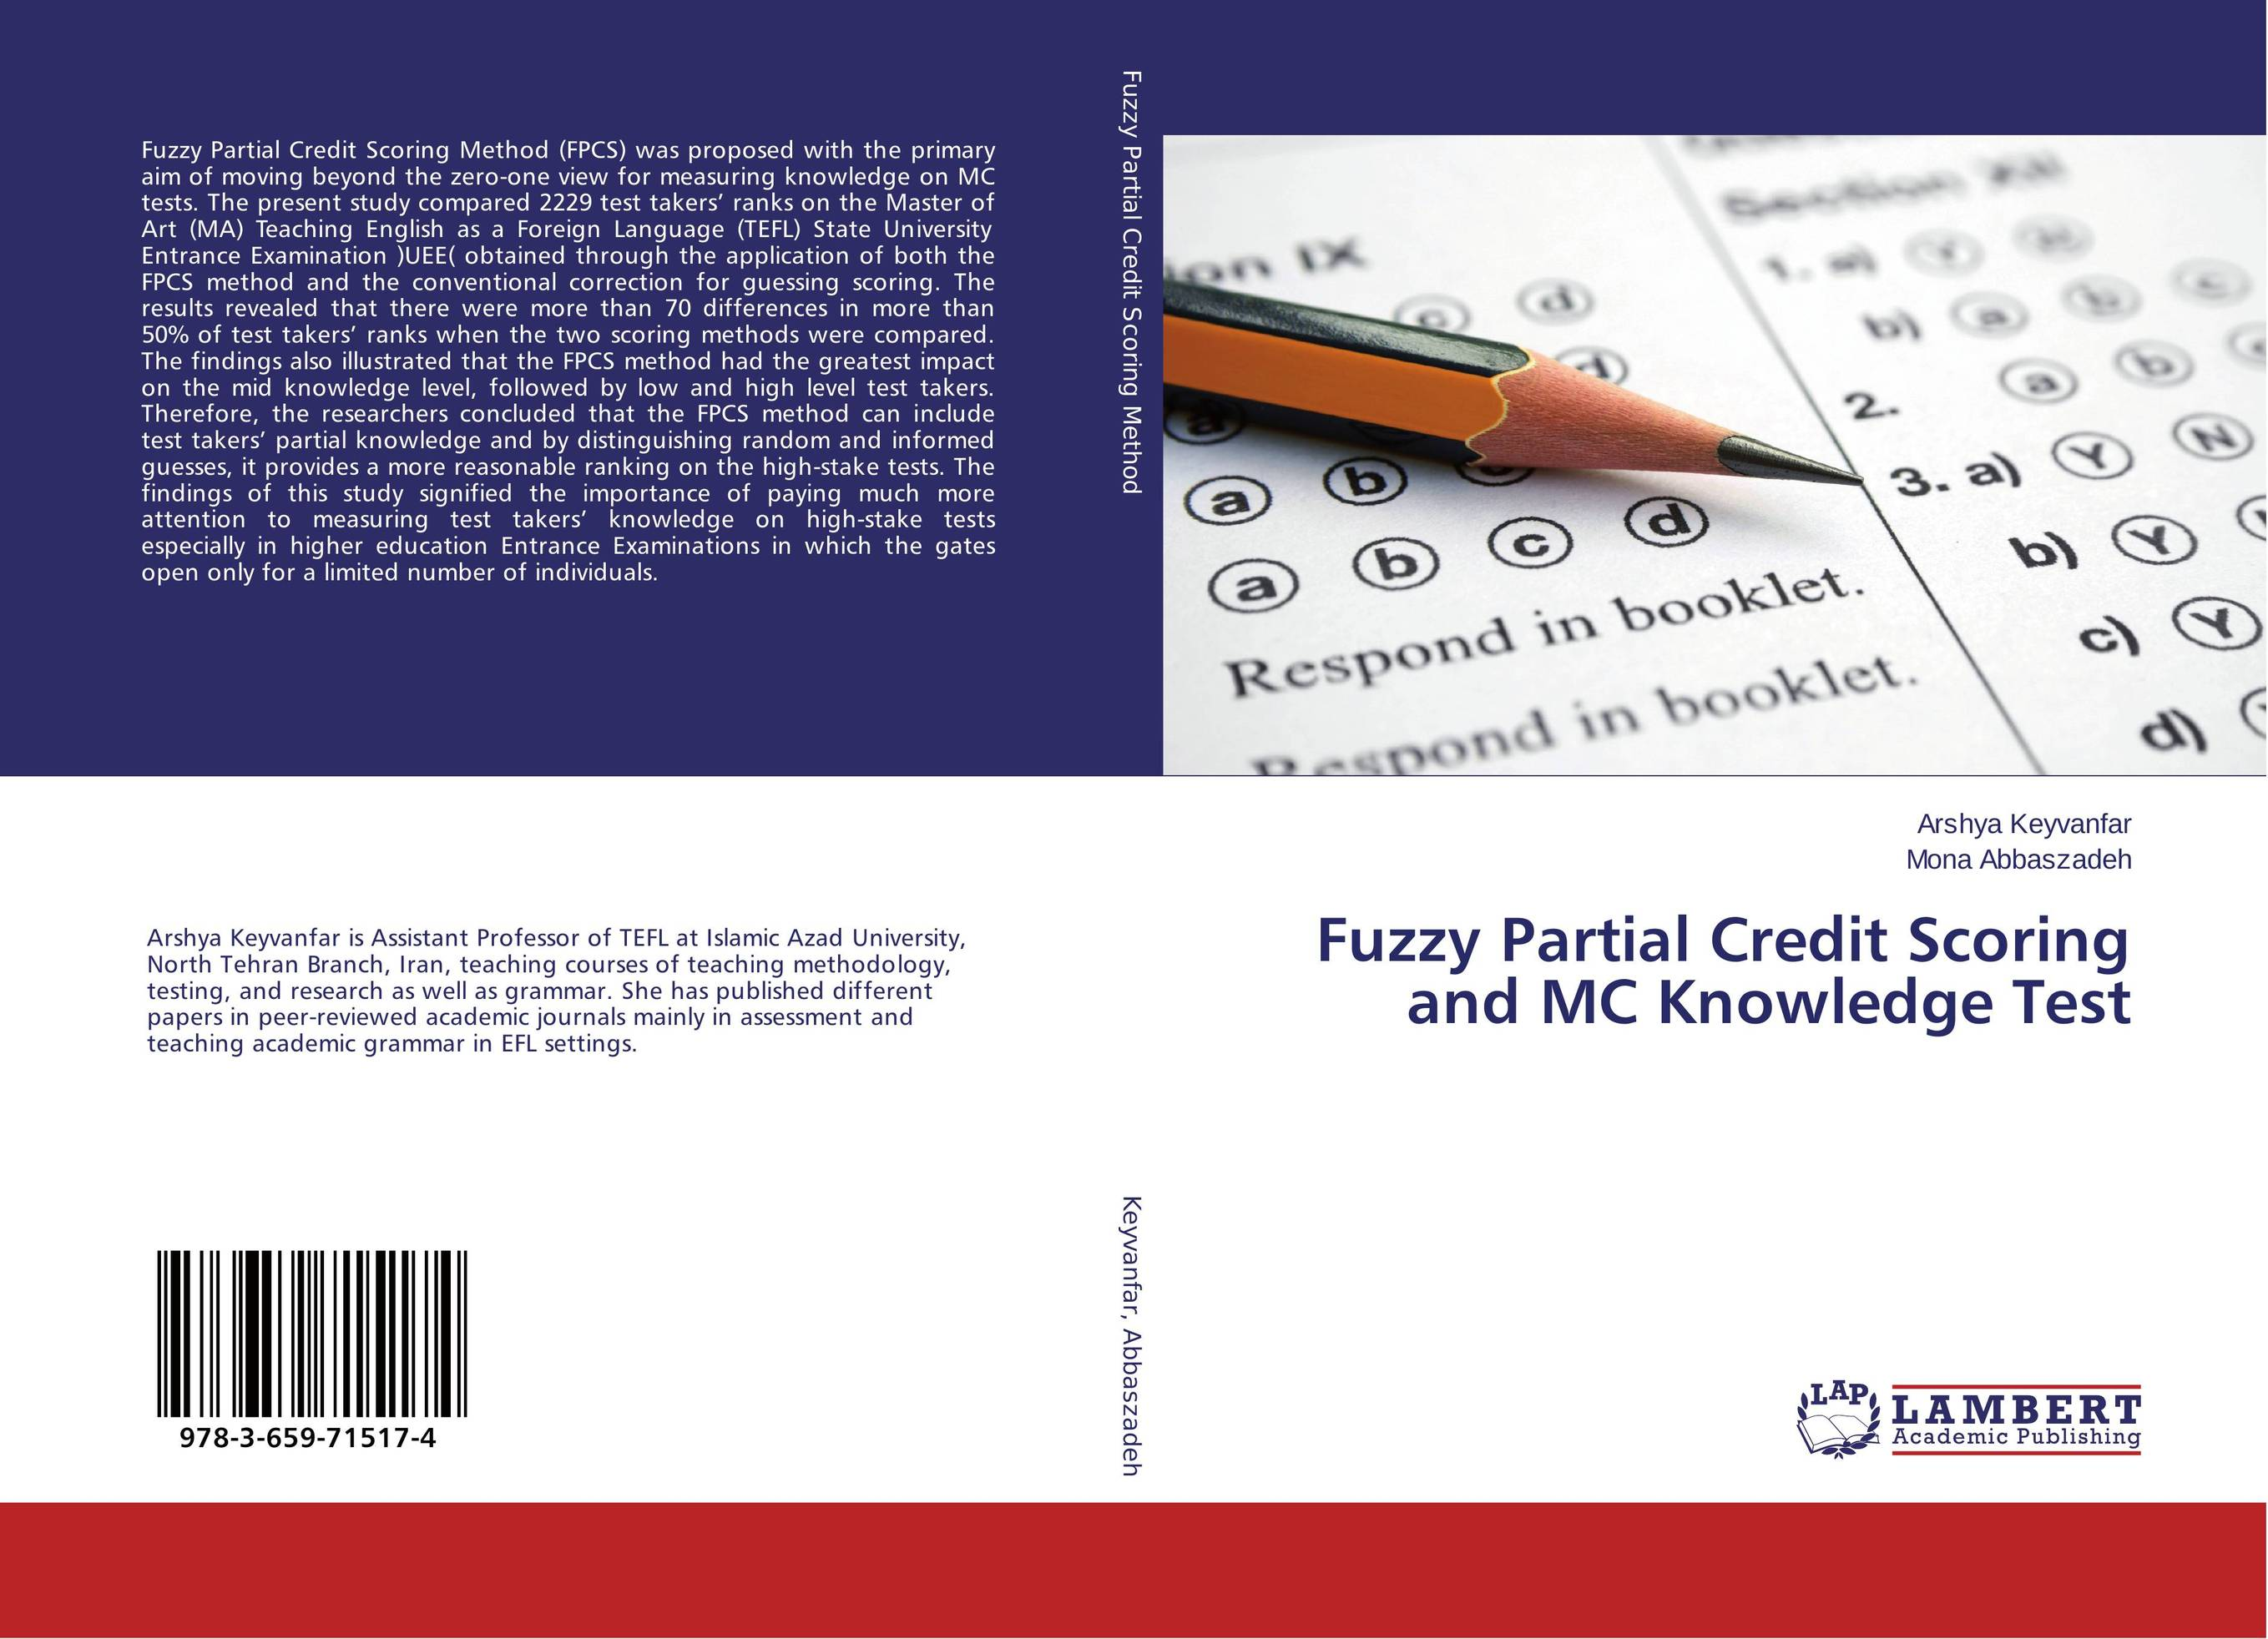 Fuzzy Partial Credit Scoring and MC Knowledge Test